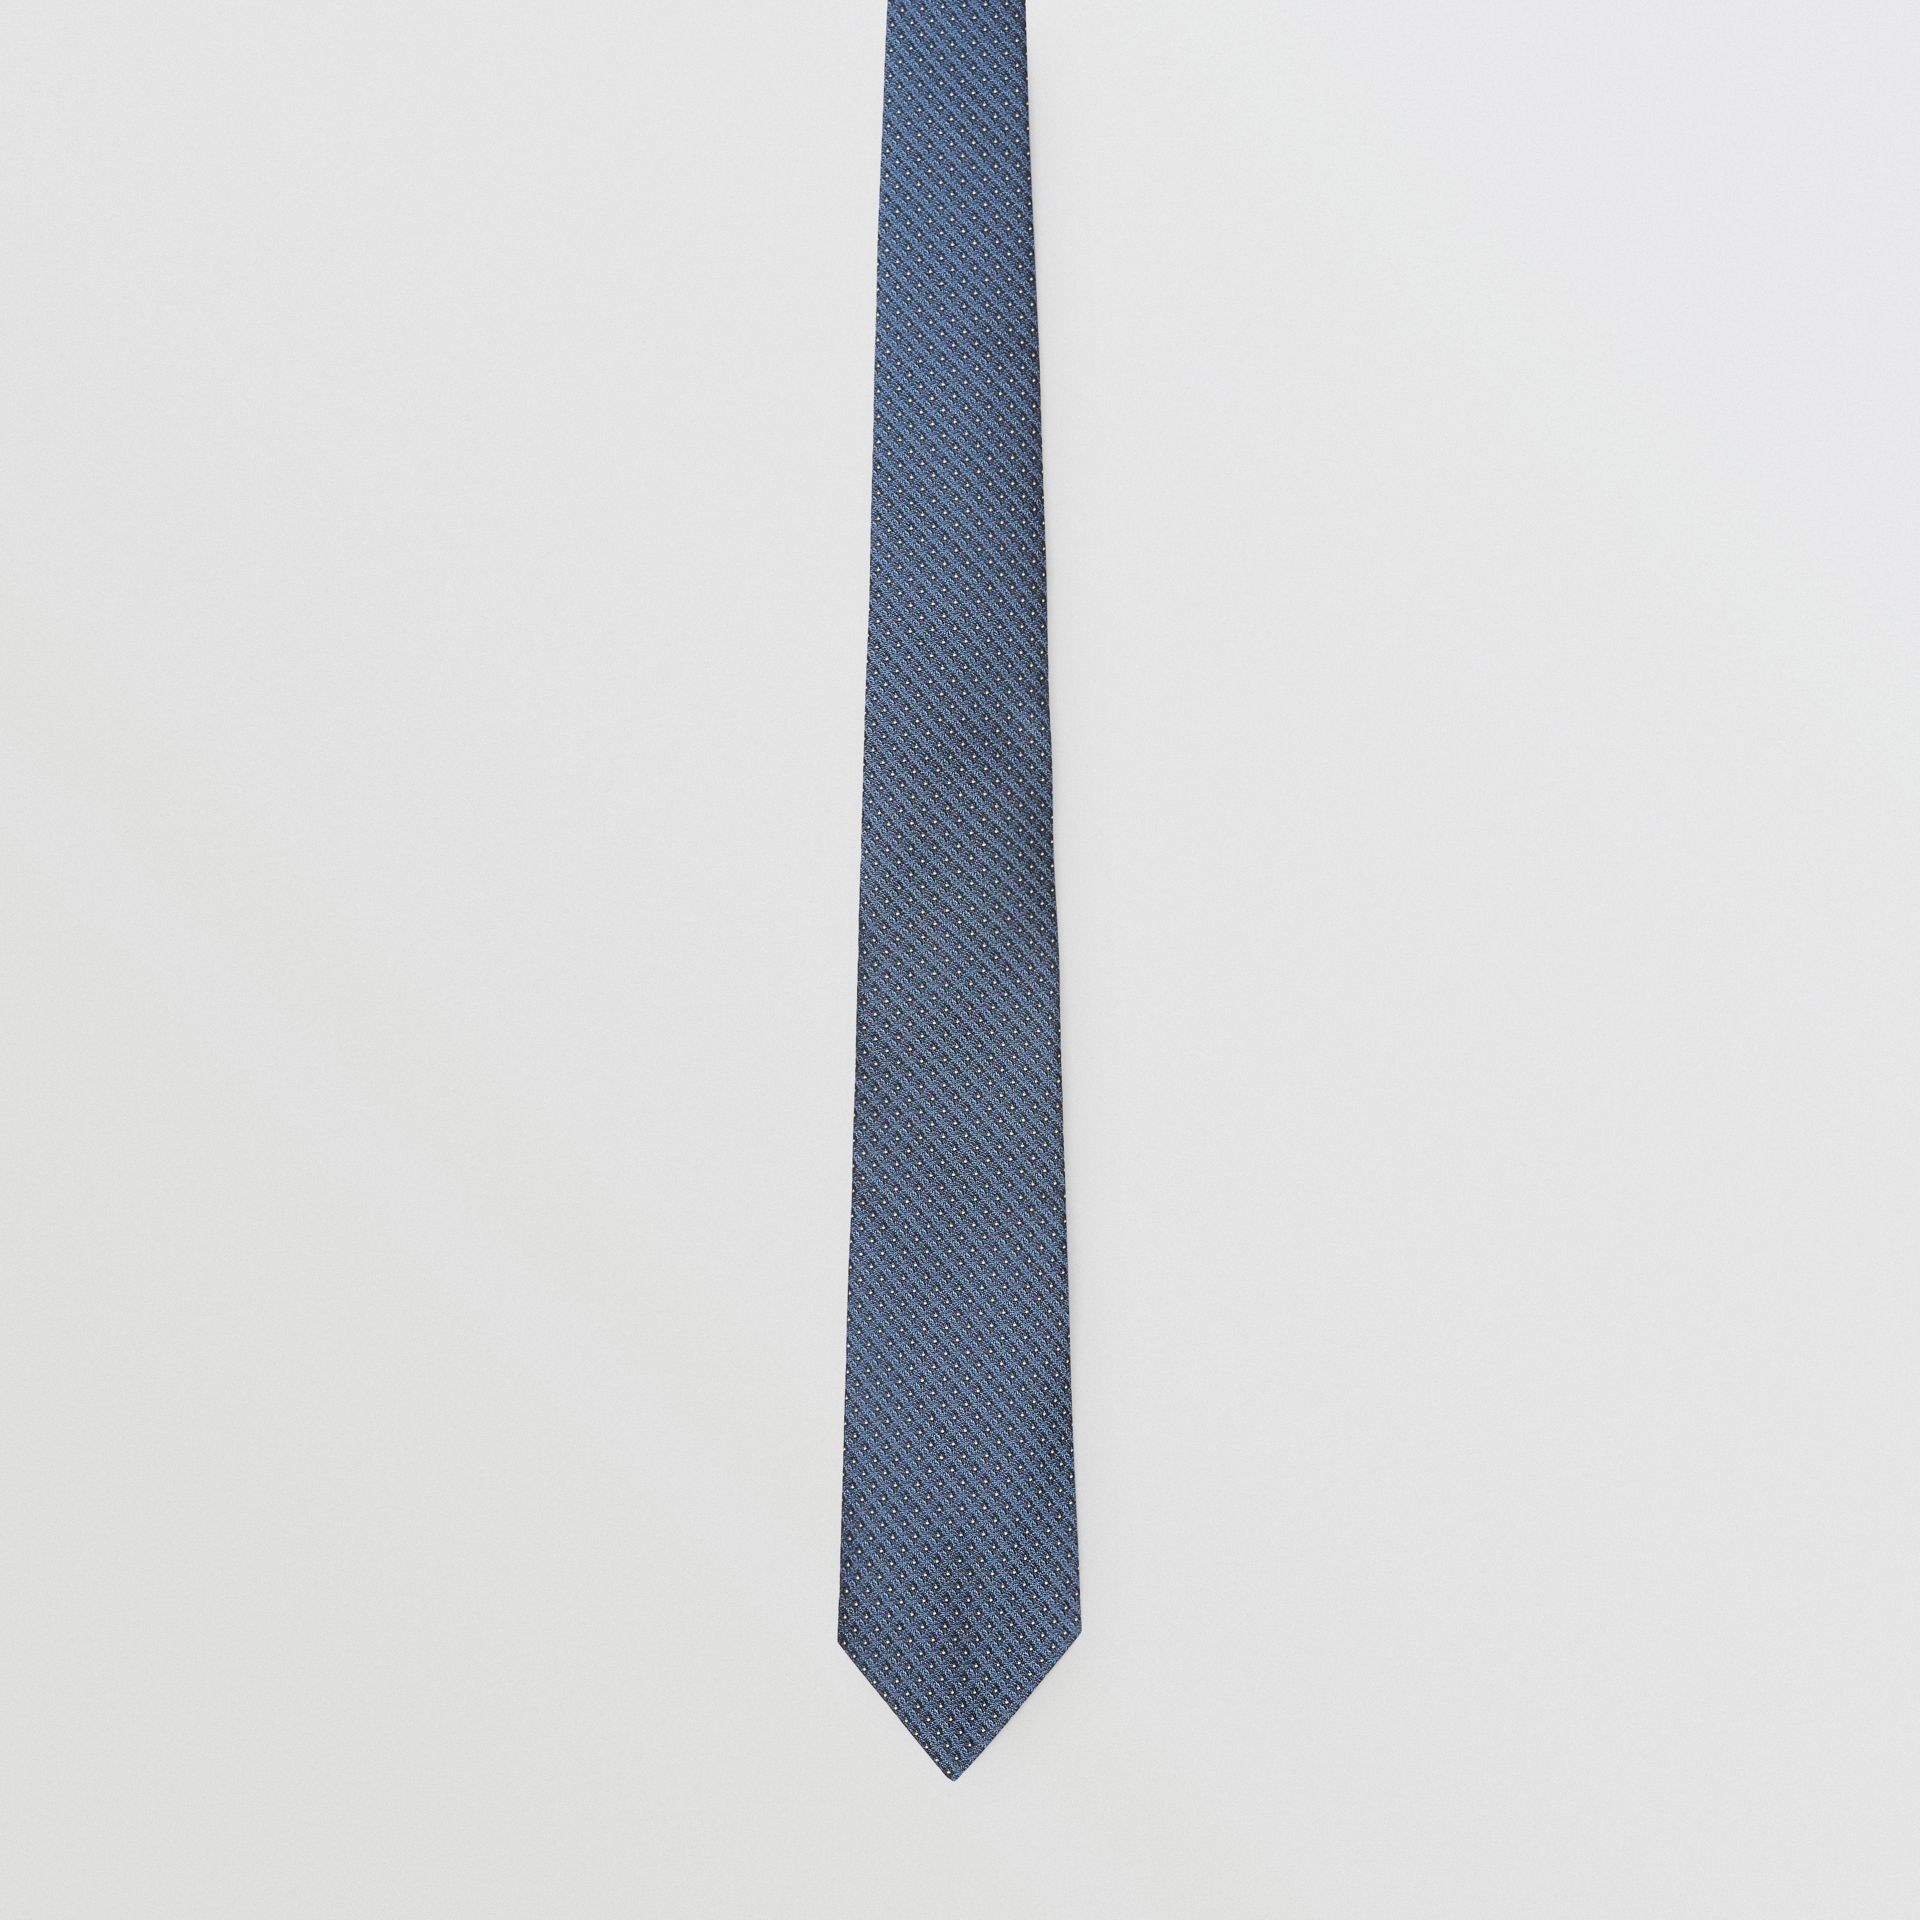 Classic Cut Micro Dot Silk Jacquard Tie in Porcelain Blue - Men | Burberry Singapore - gallery image 3